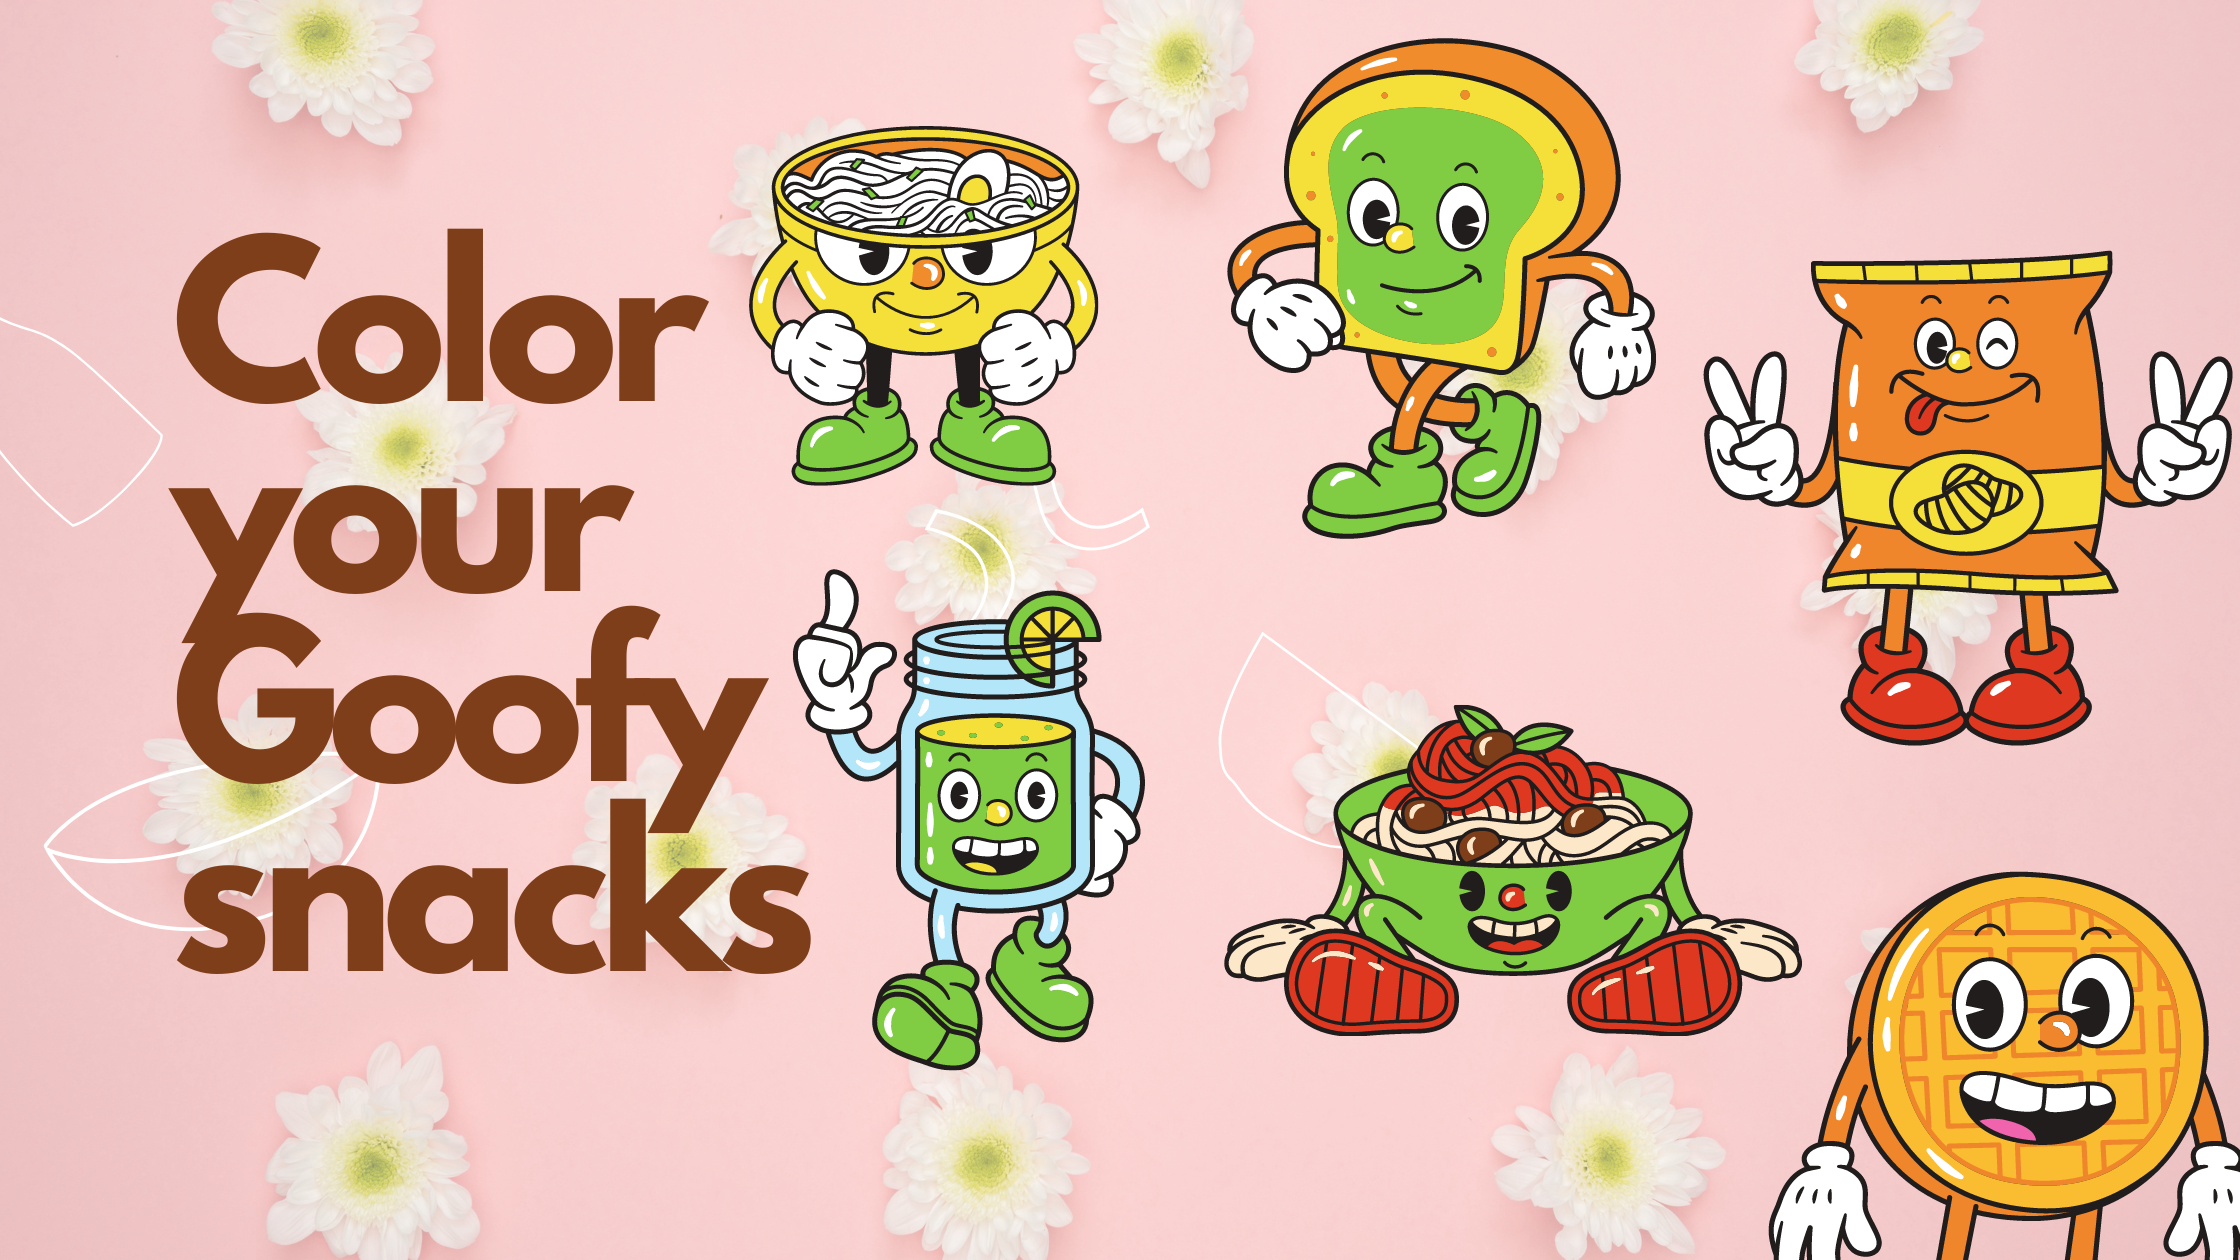 10 Free coloring worksheets – say hello to Goofy Snacks!